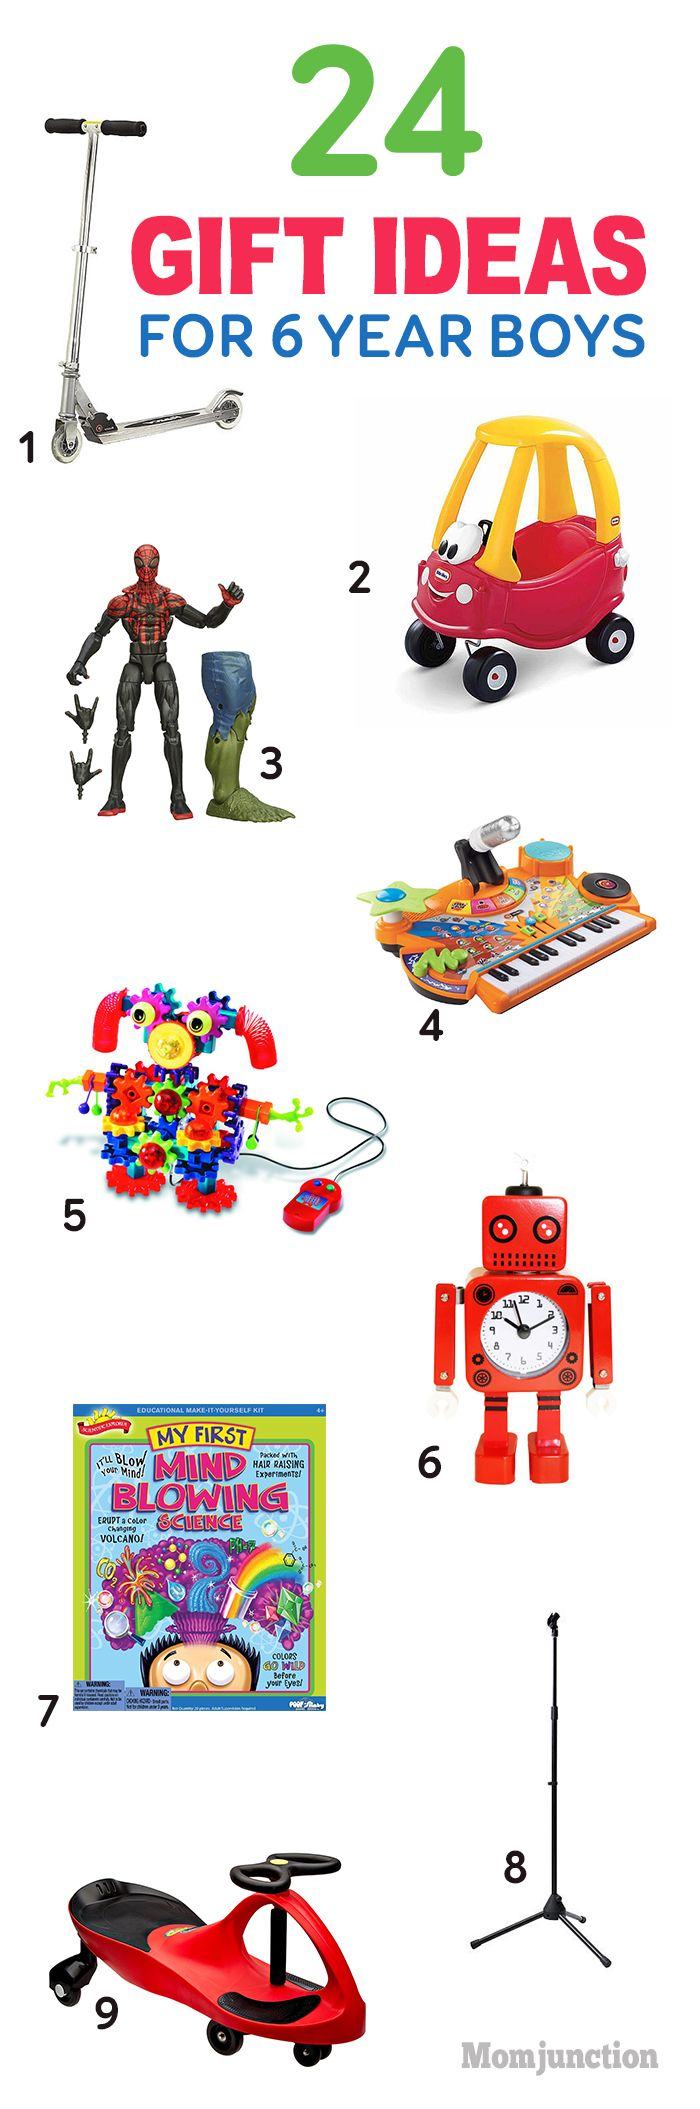 Toys For Boys Age 19 : Best gifts for boys age images on pinterest popular